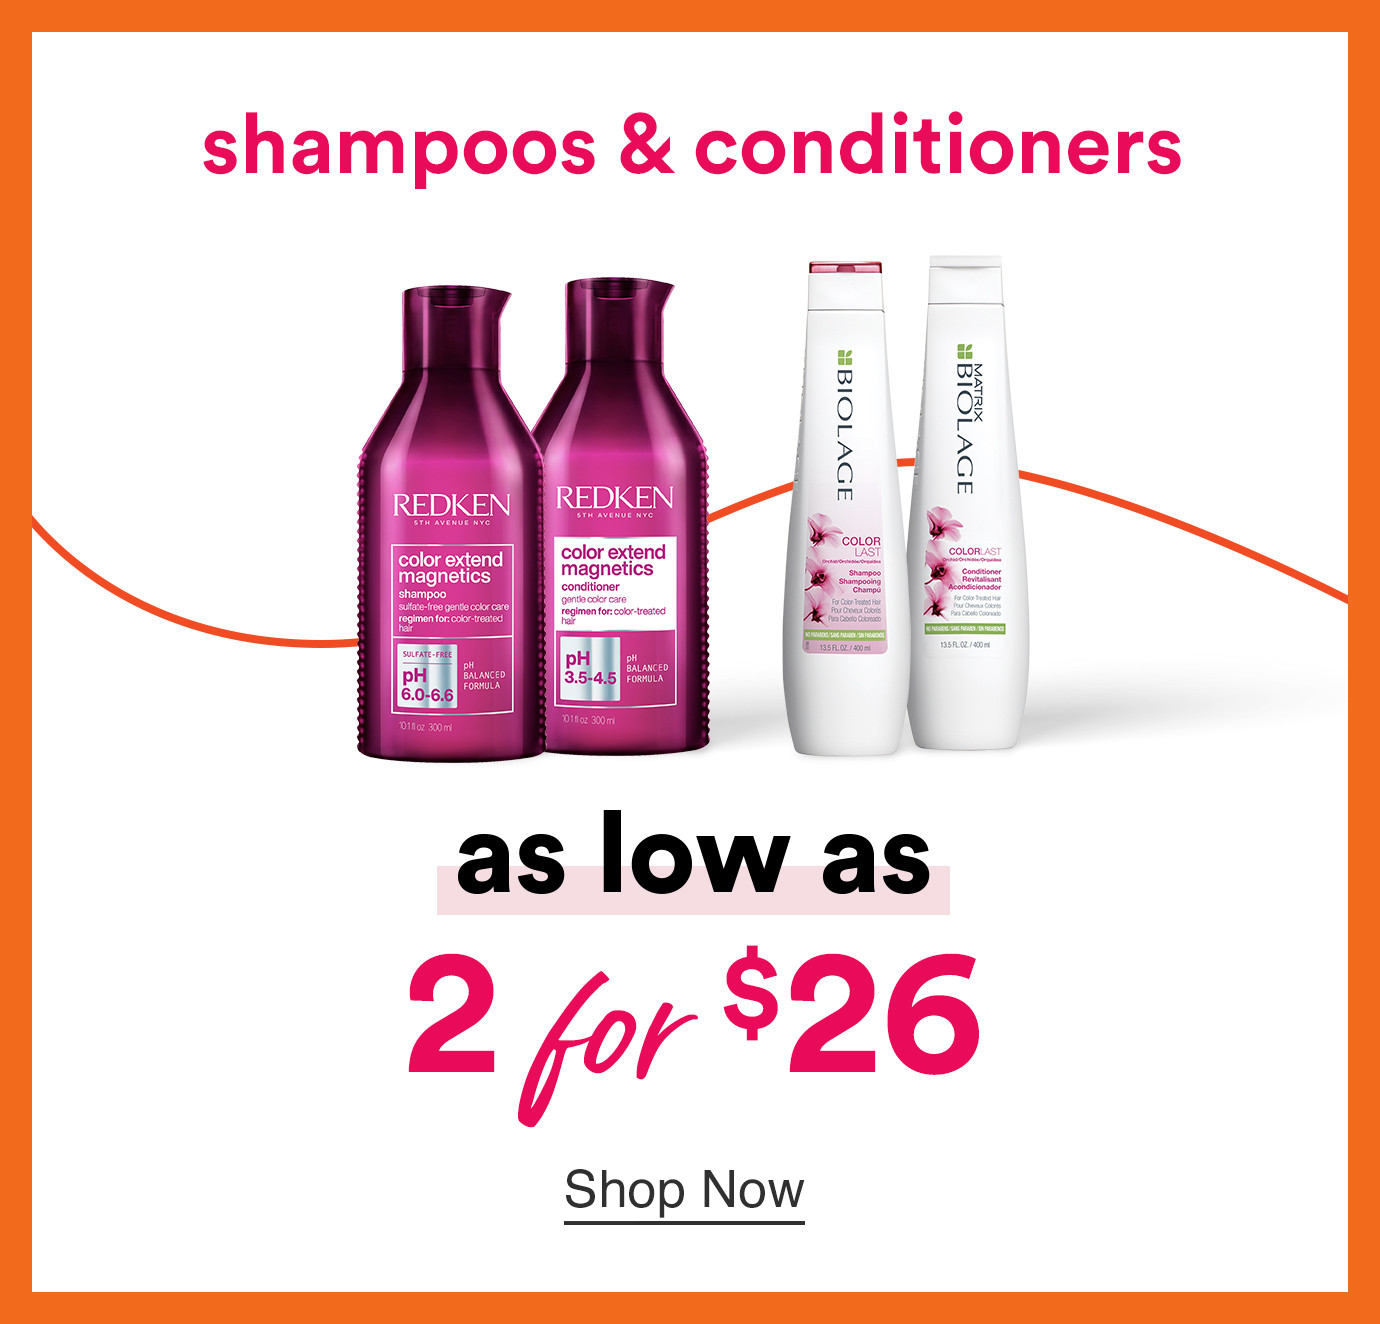 Shop shampoos & conditioners as low as 2 for $26 during Ulta Beauty's Gorgeous Hair Event